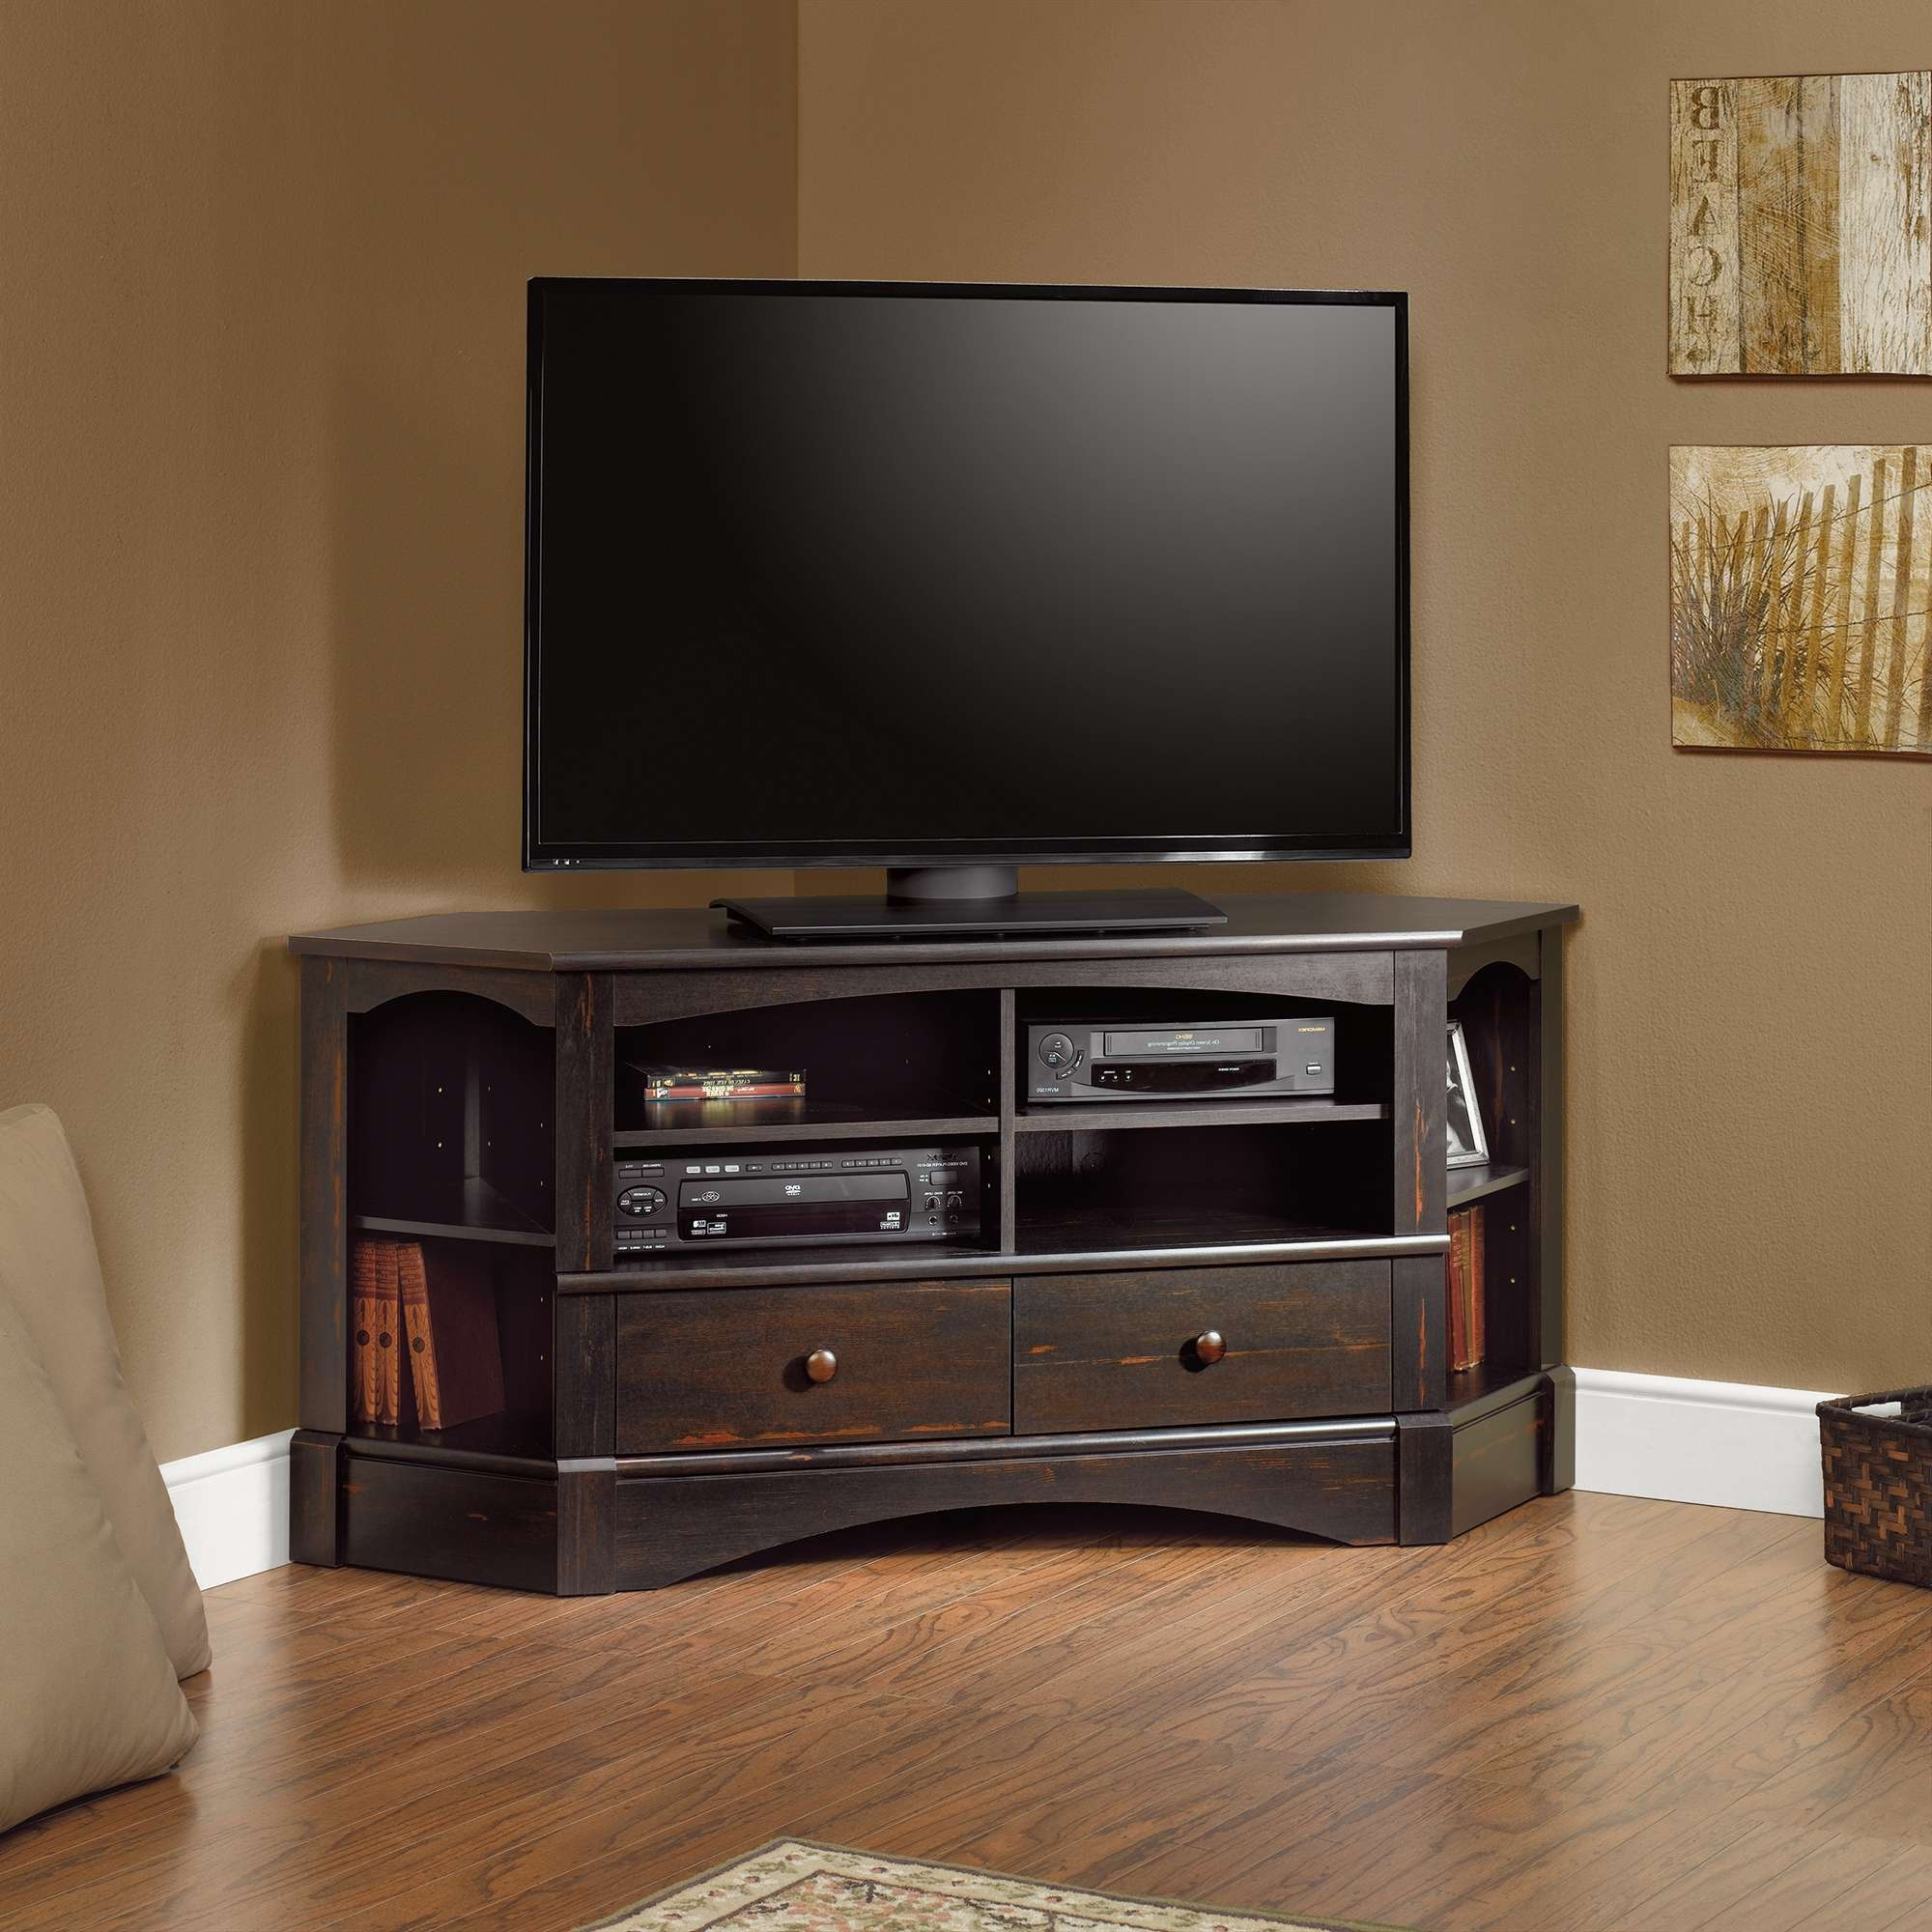 Harbor View | Corner Entertainment Credenza | 402902 | Sauder For 61 Inch Tv Stands (View 10 of 15)